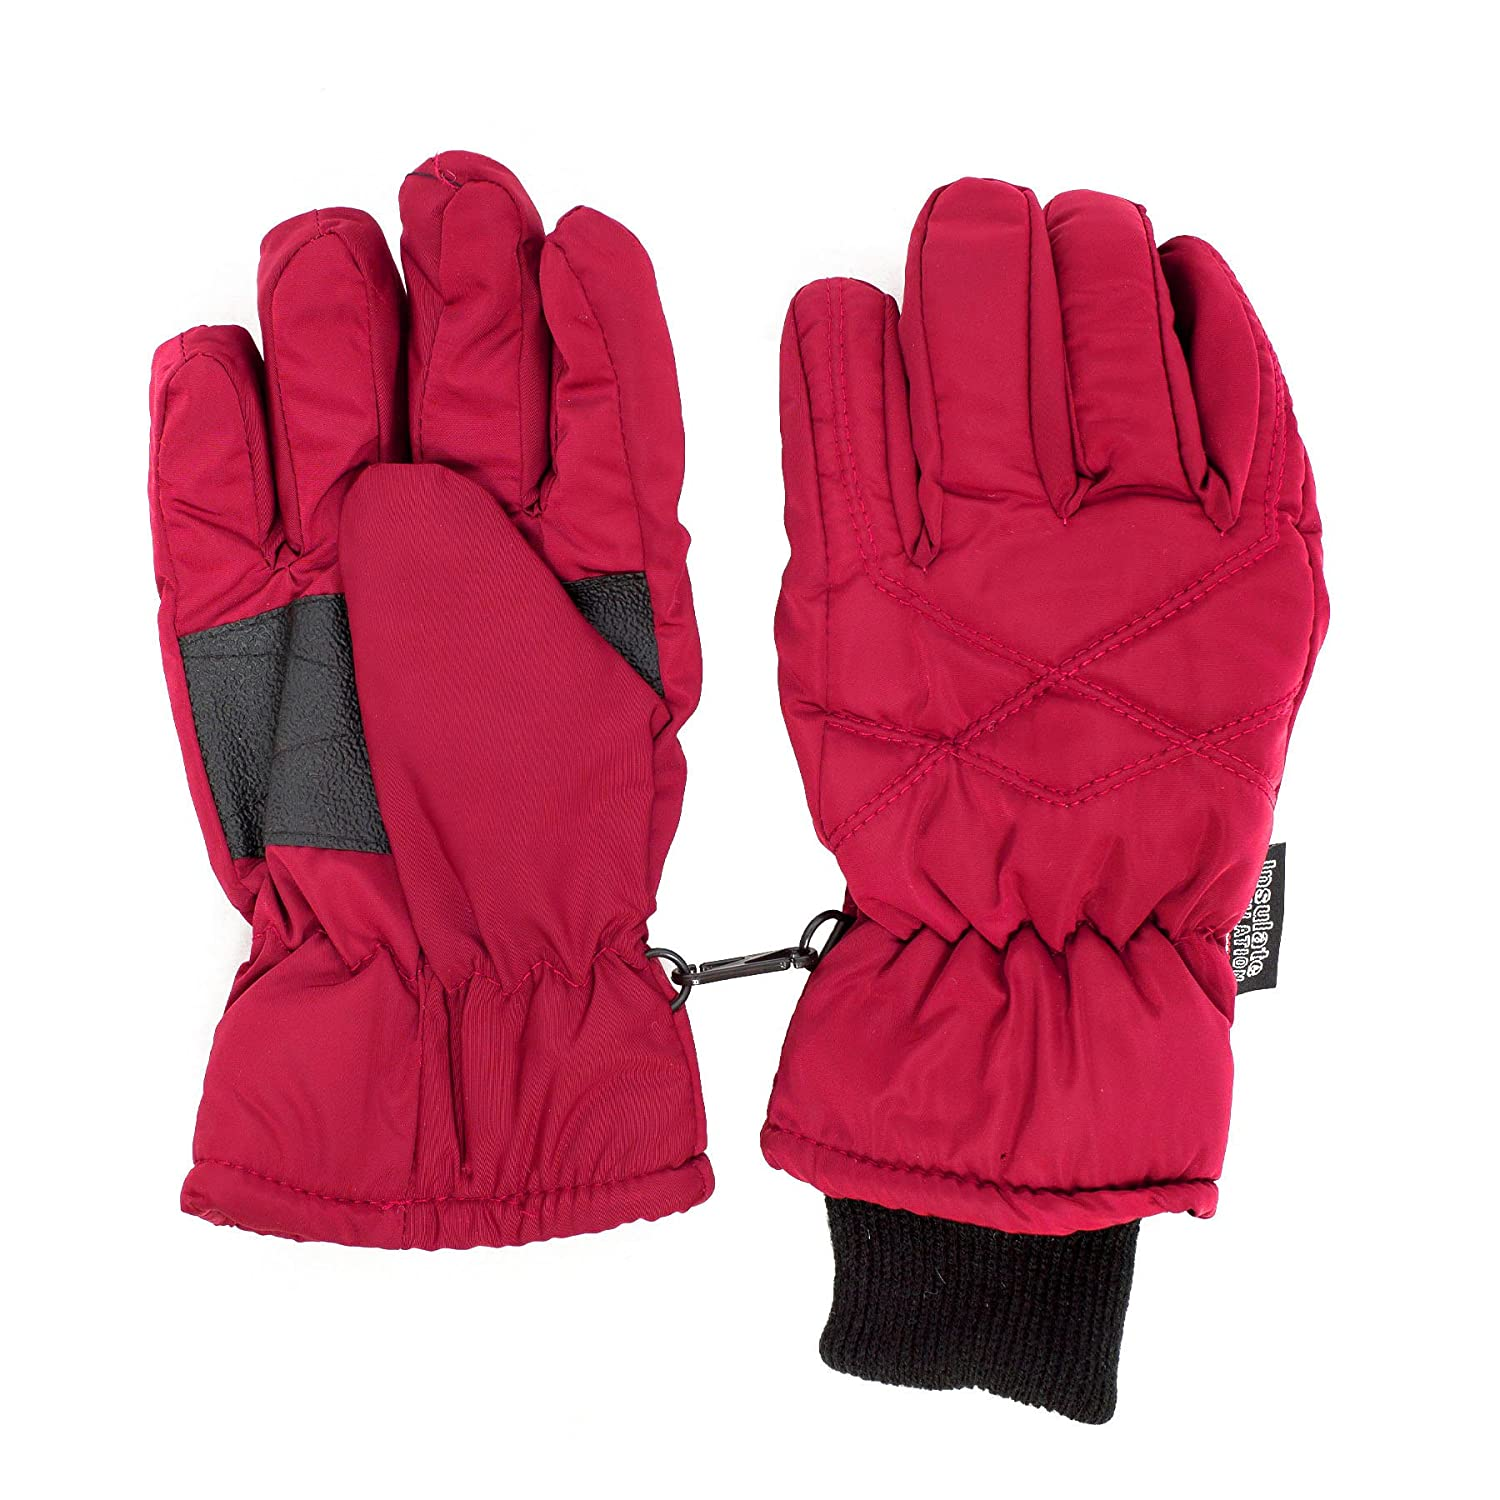 SANREMO Unisex Kids Thinsulate and Waterproof Cold Weather Ski Gloves Rose) 9367-$P